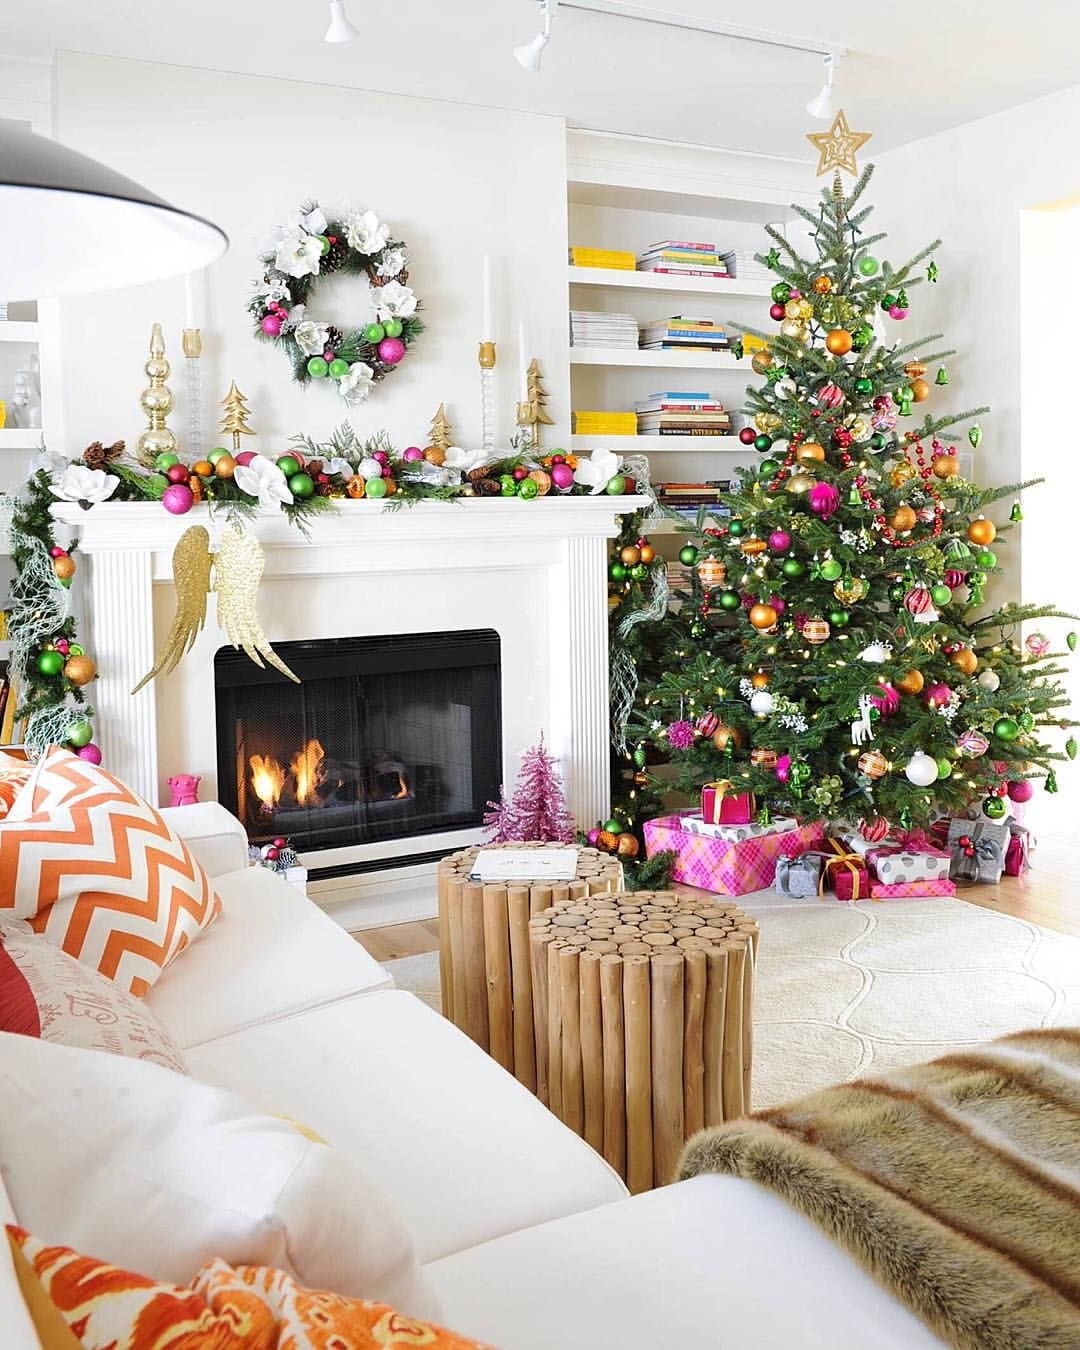 10 Ways to Decorate Your Christmas Tree - Colorful Christmas Tree